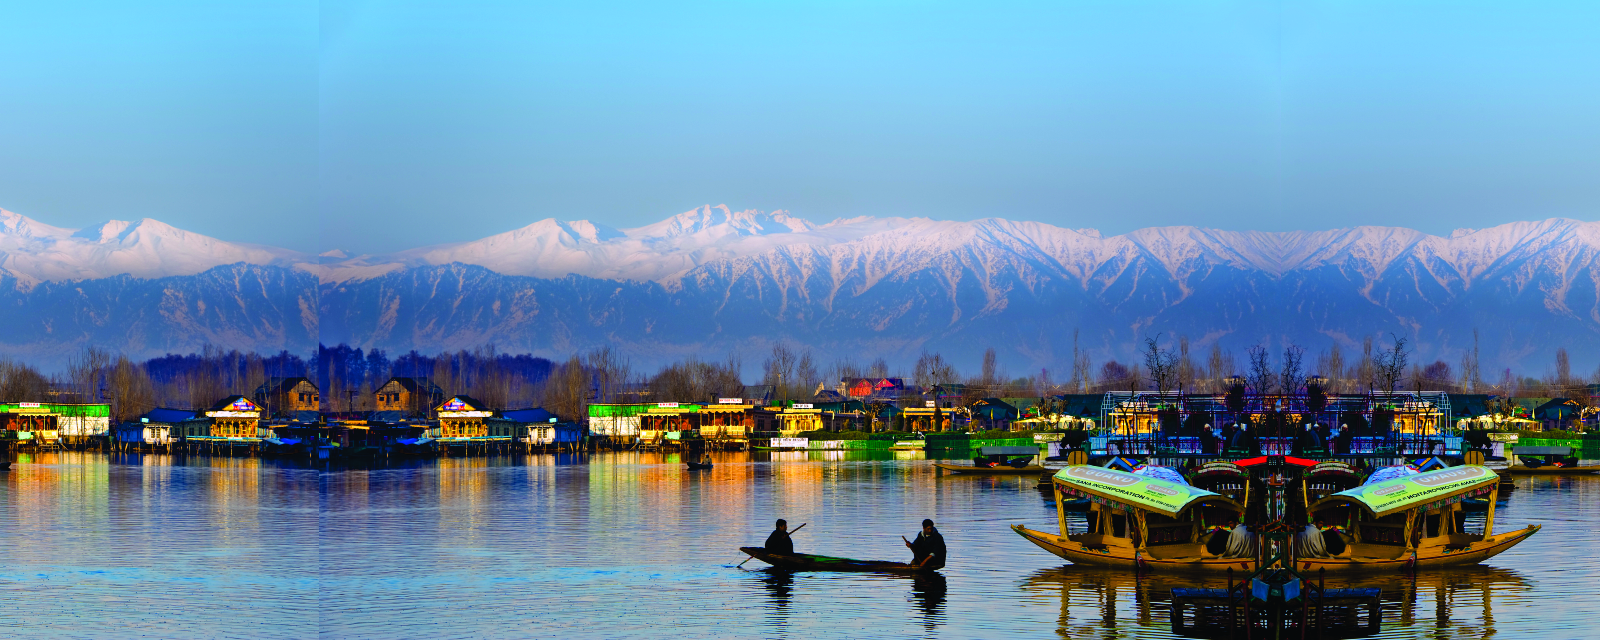 Kashmir, A Heaven On Earth